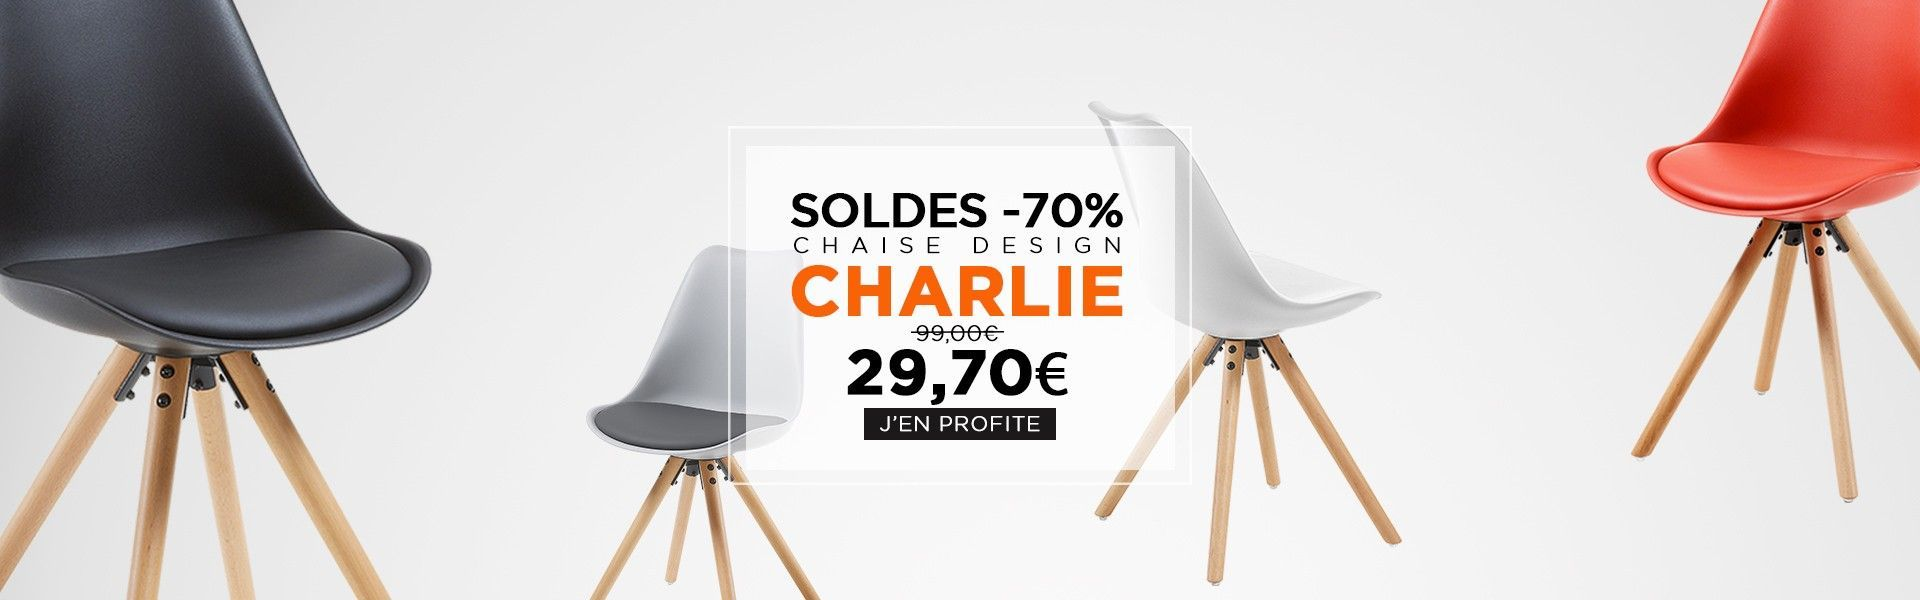 soldes chaise charlie scandinave